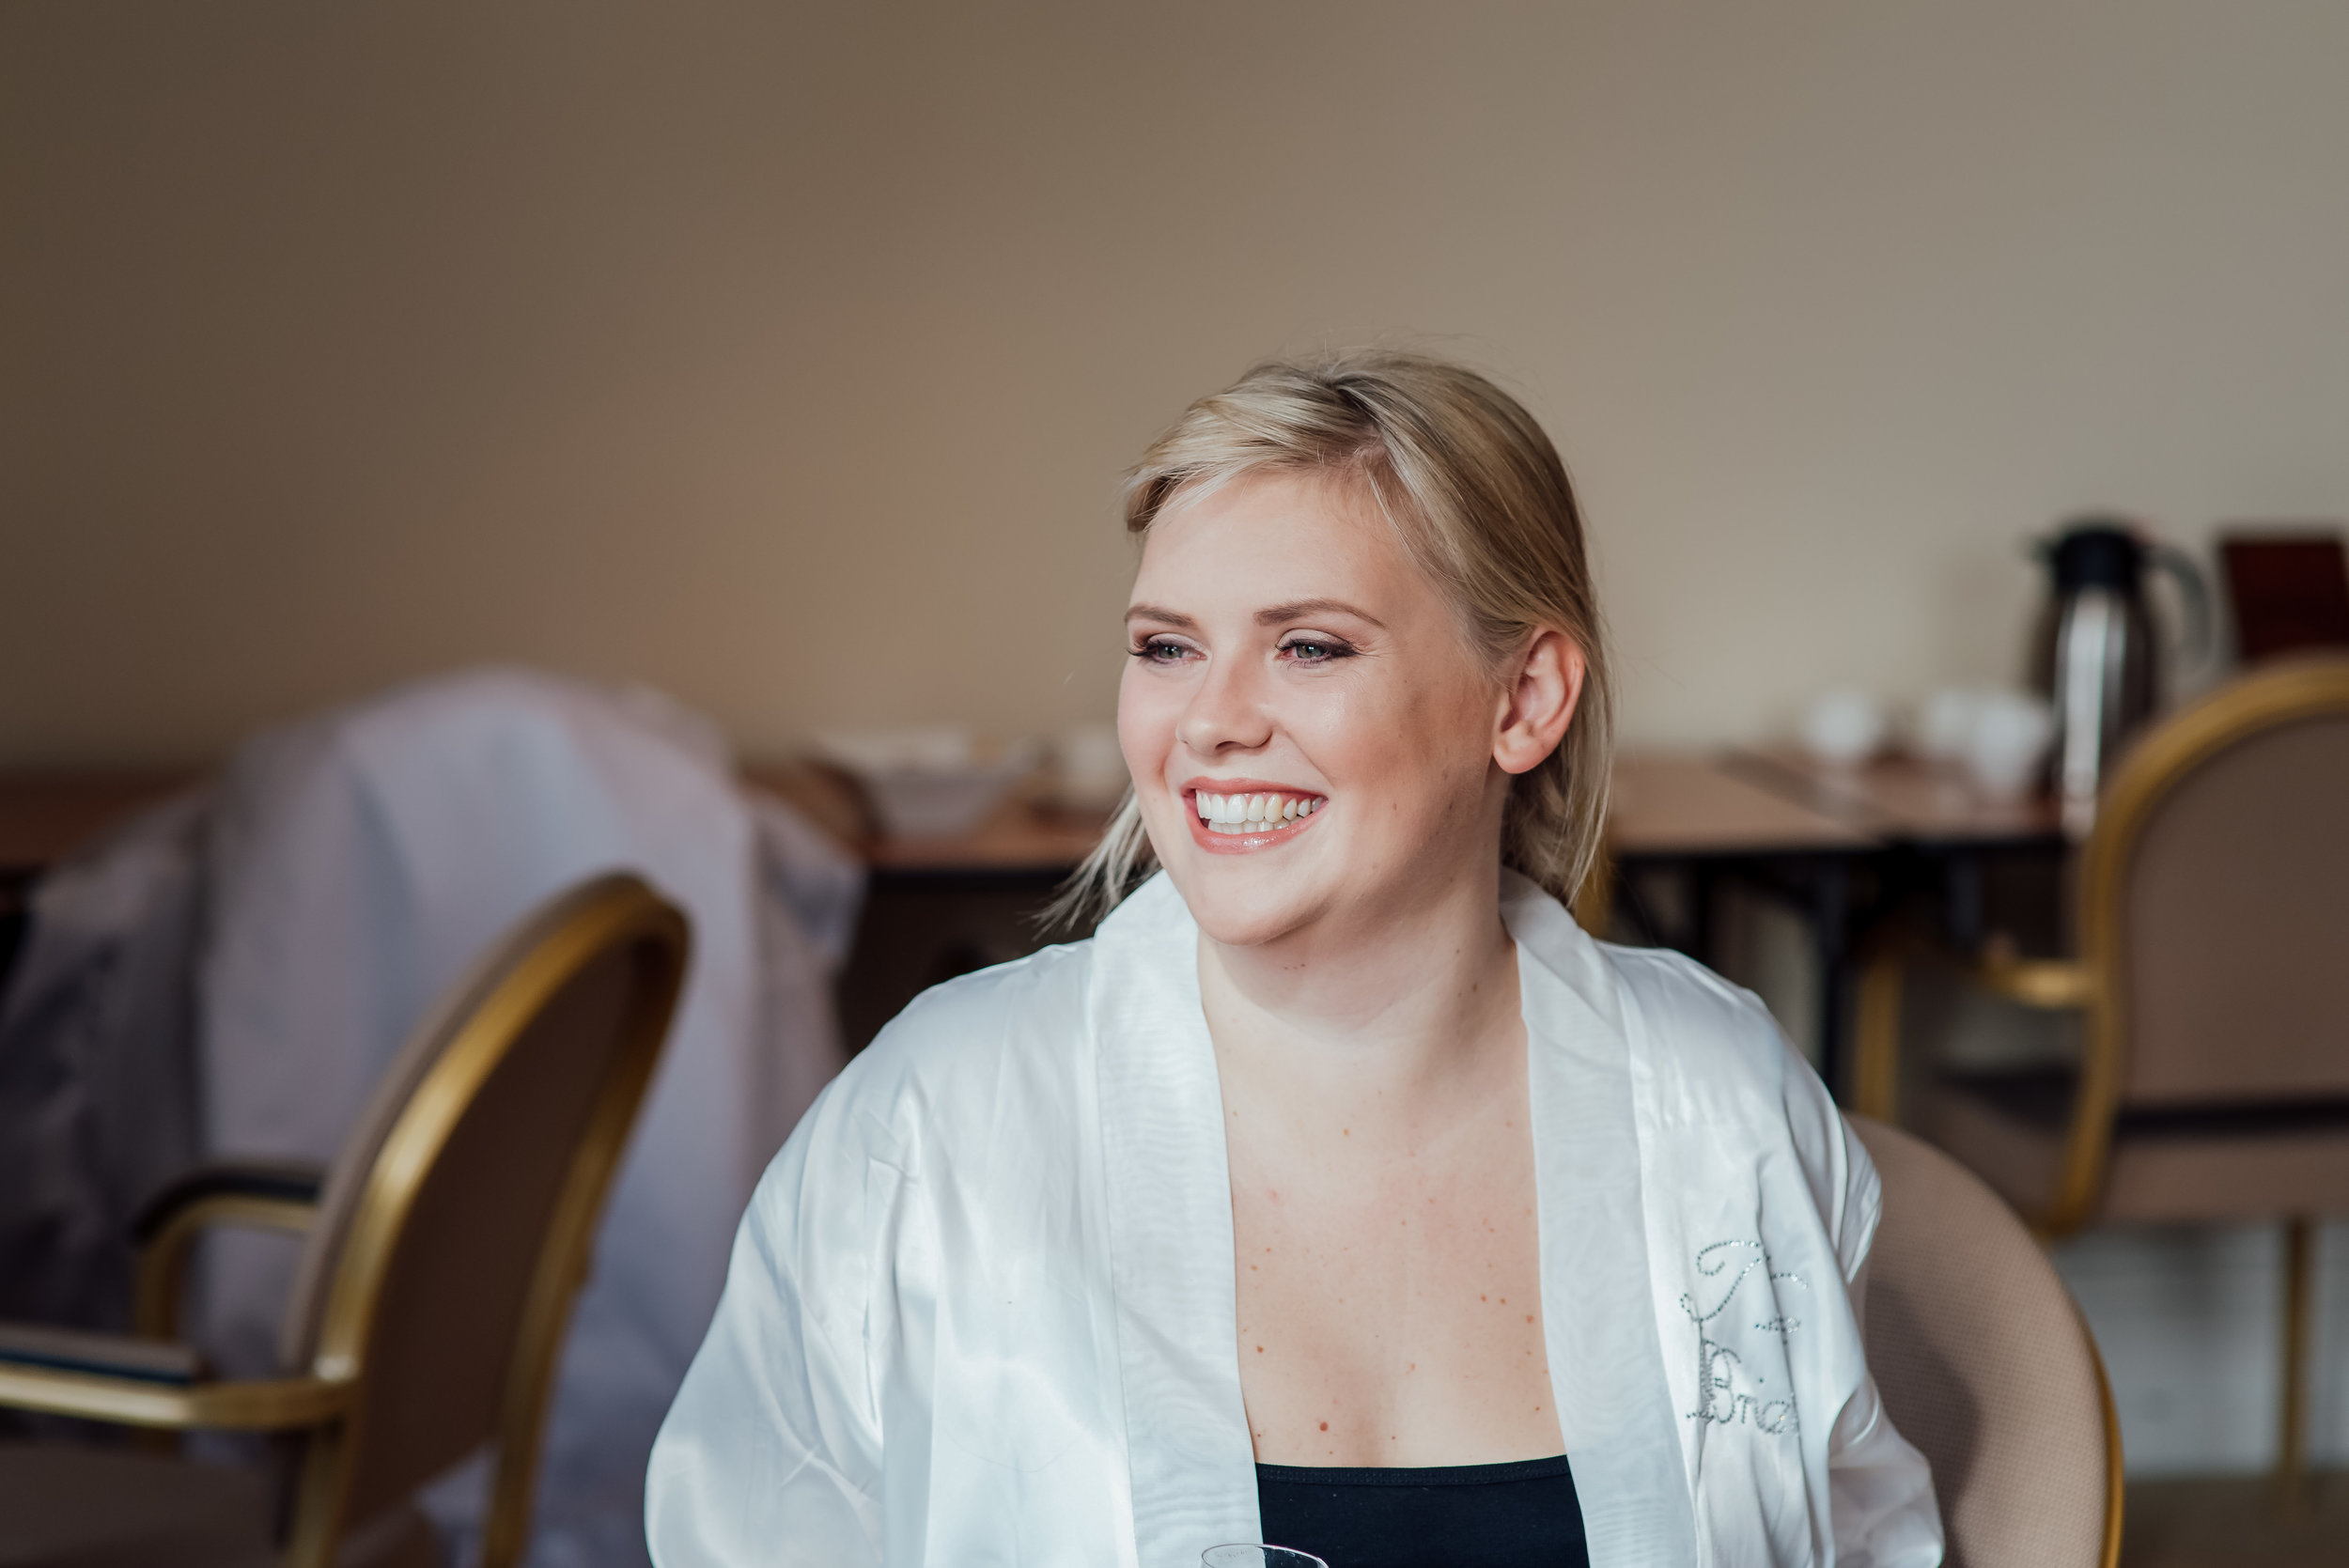 Bride getting ready at The Elvetham Wedding venue by Hampshire Wedding Photographer Amy James Photography